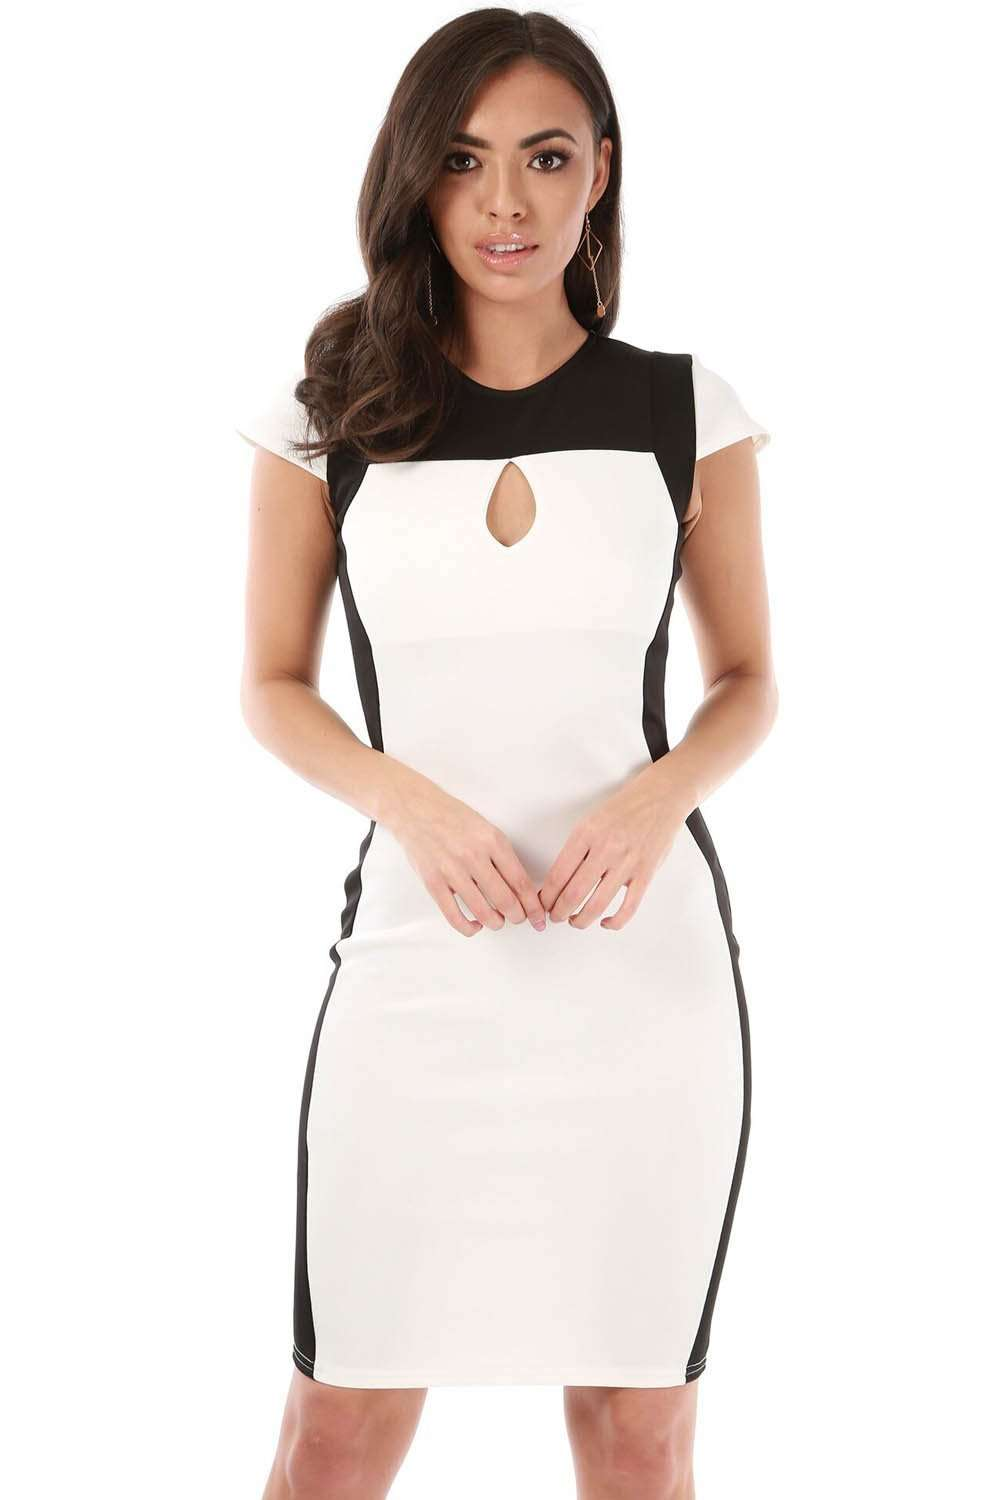 Caroline Monochrome Panelled Bodycon Dress - bejealous-com